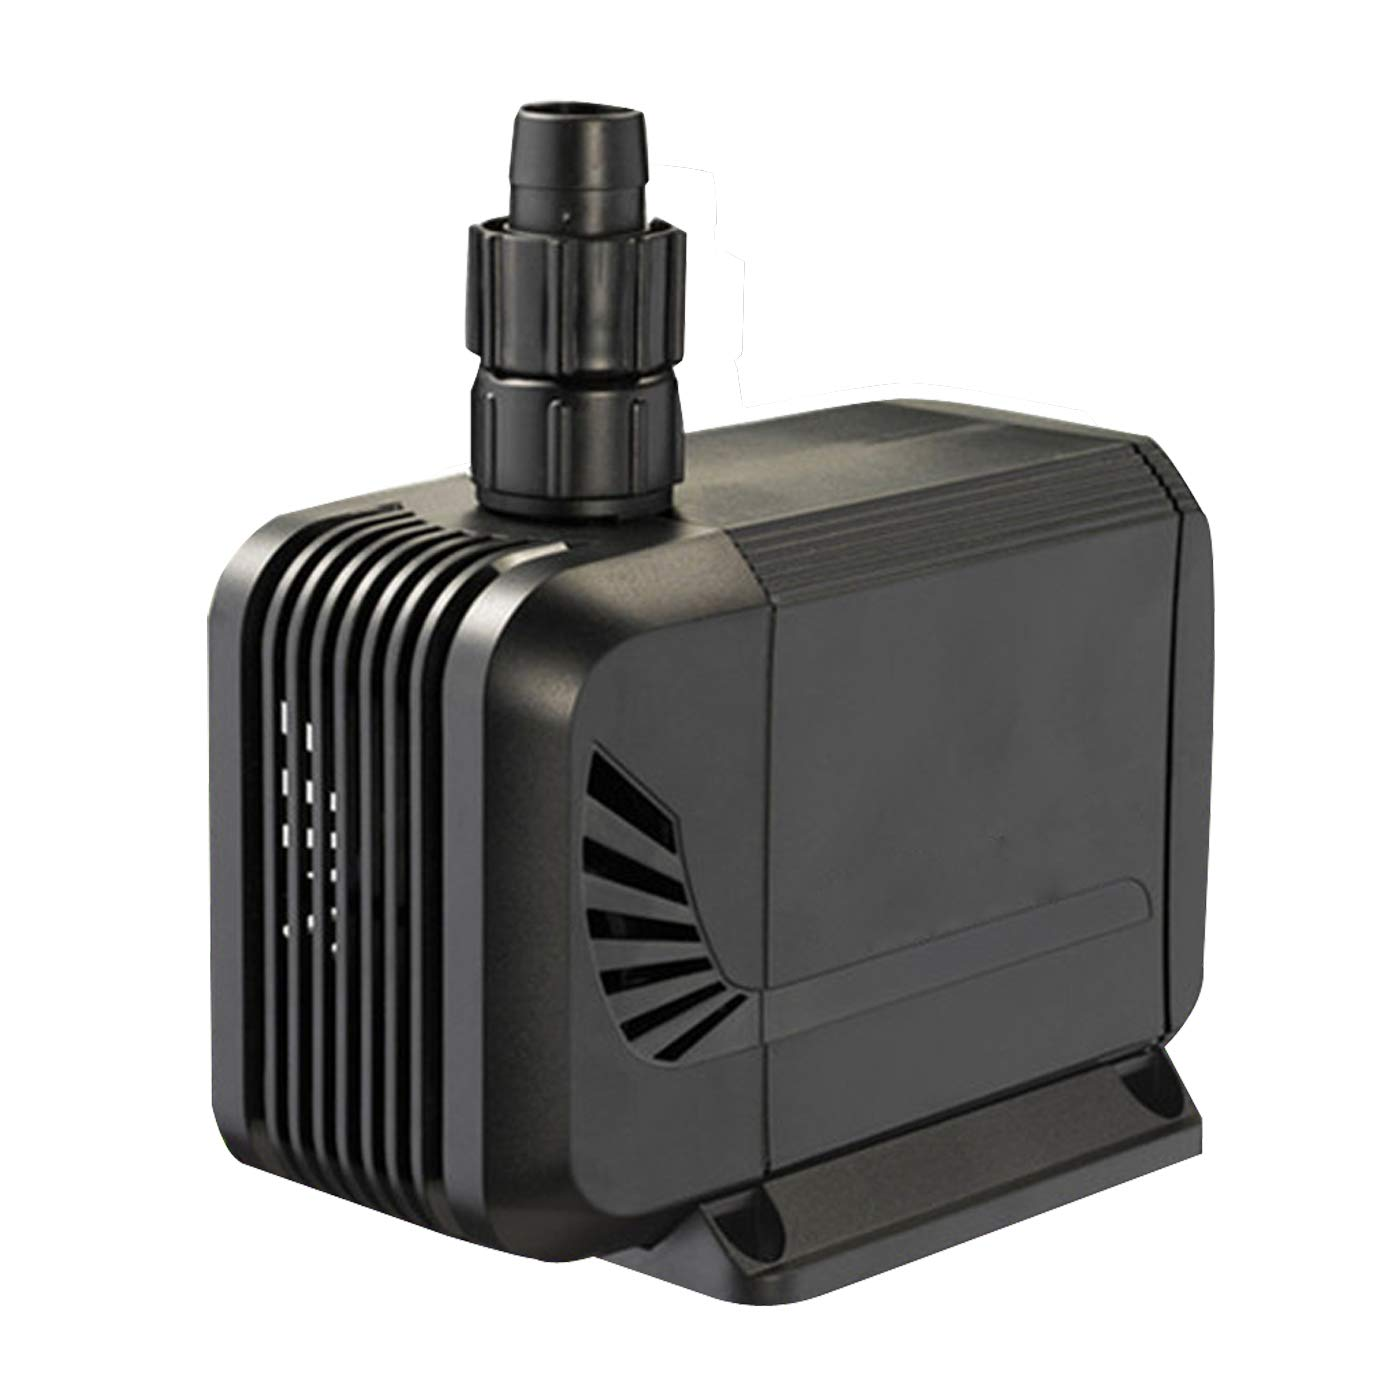 1500L/H, 15W Submersible Pump, Ultra Quiet Fountain Water Pump with 4.1ft Power Cord, Fish Tank, Pond, Statuary, Hydroponics